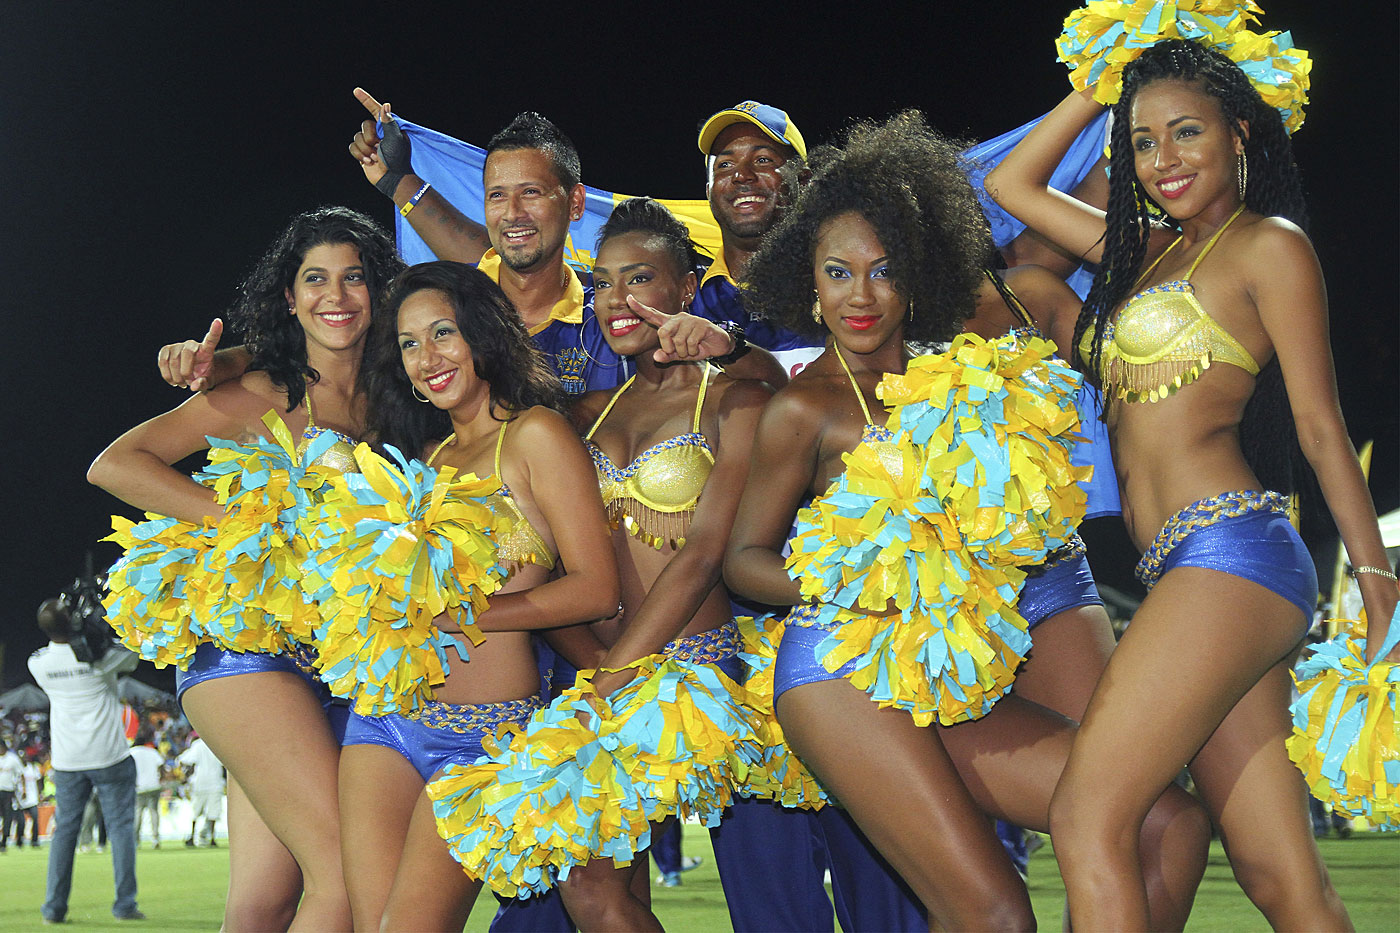 Turn it up to ten: the CPL is billed as the biggest party in cricket